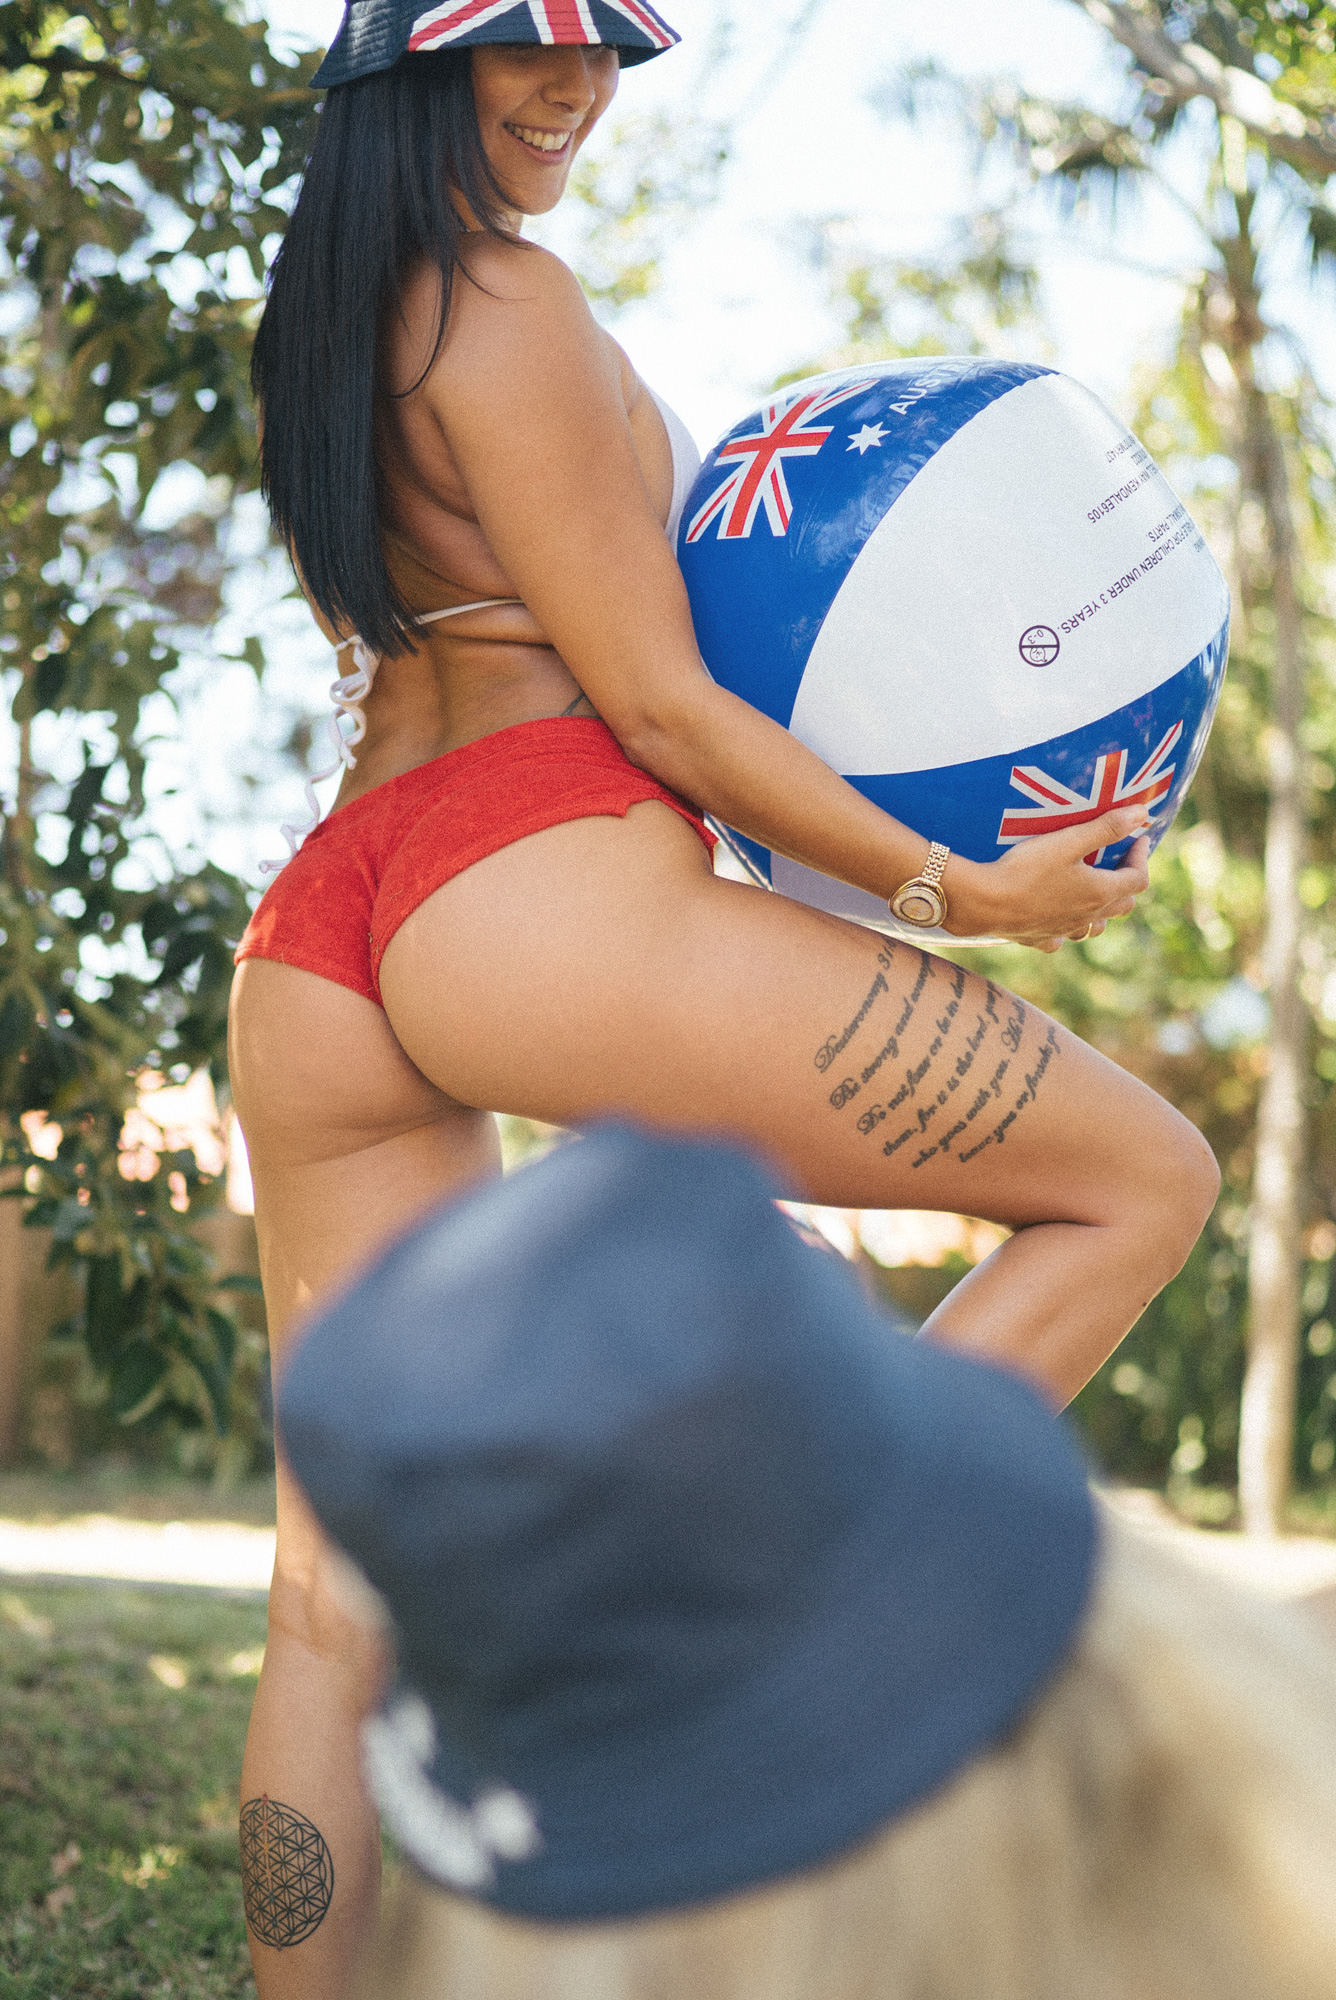 australiaday_babes_garden_shoot_justinfox_photos